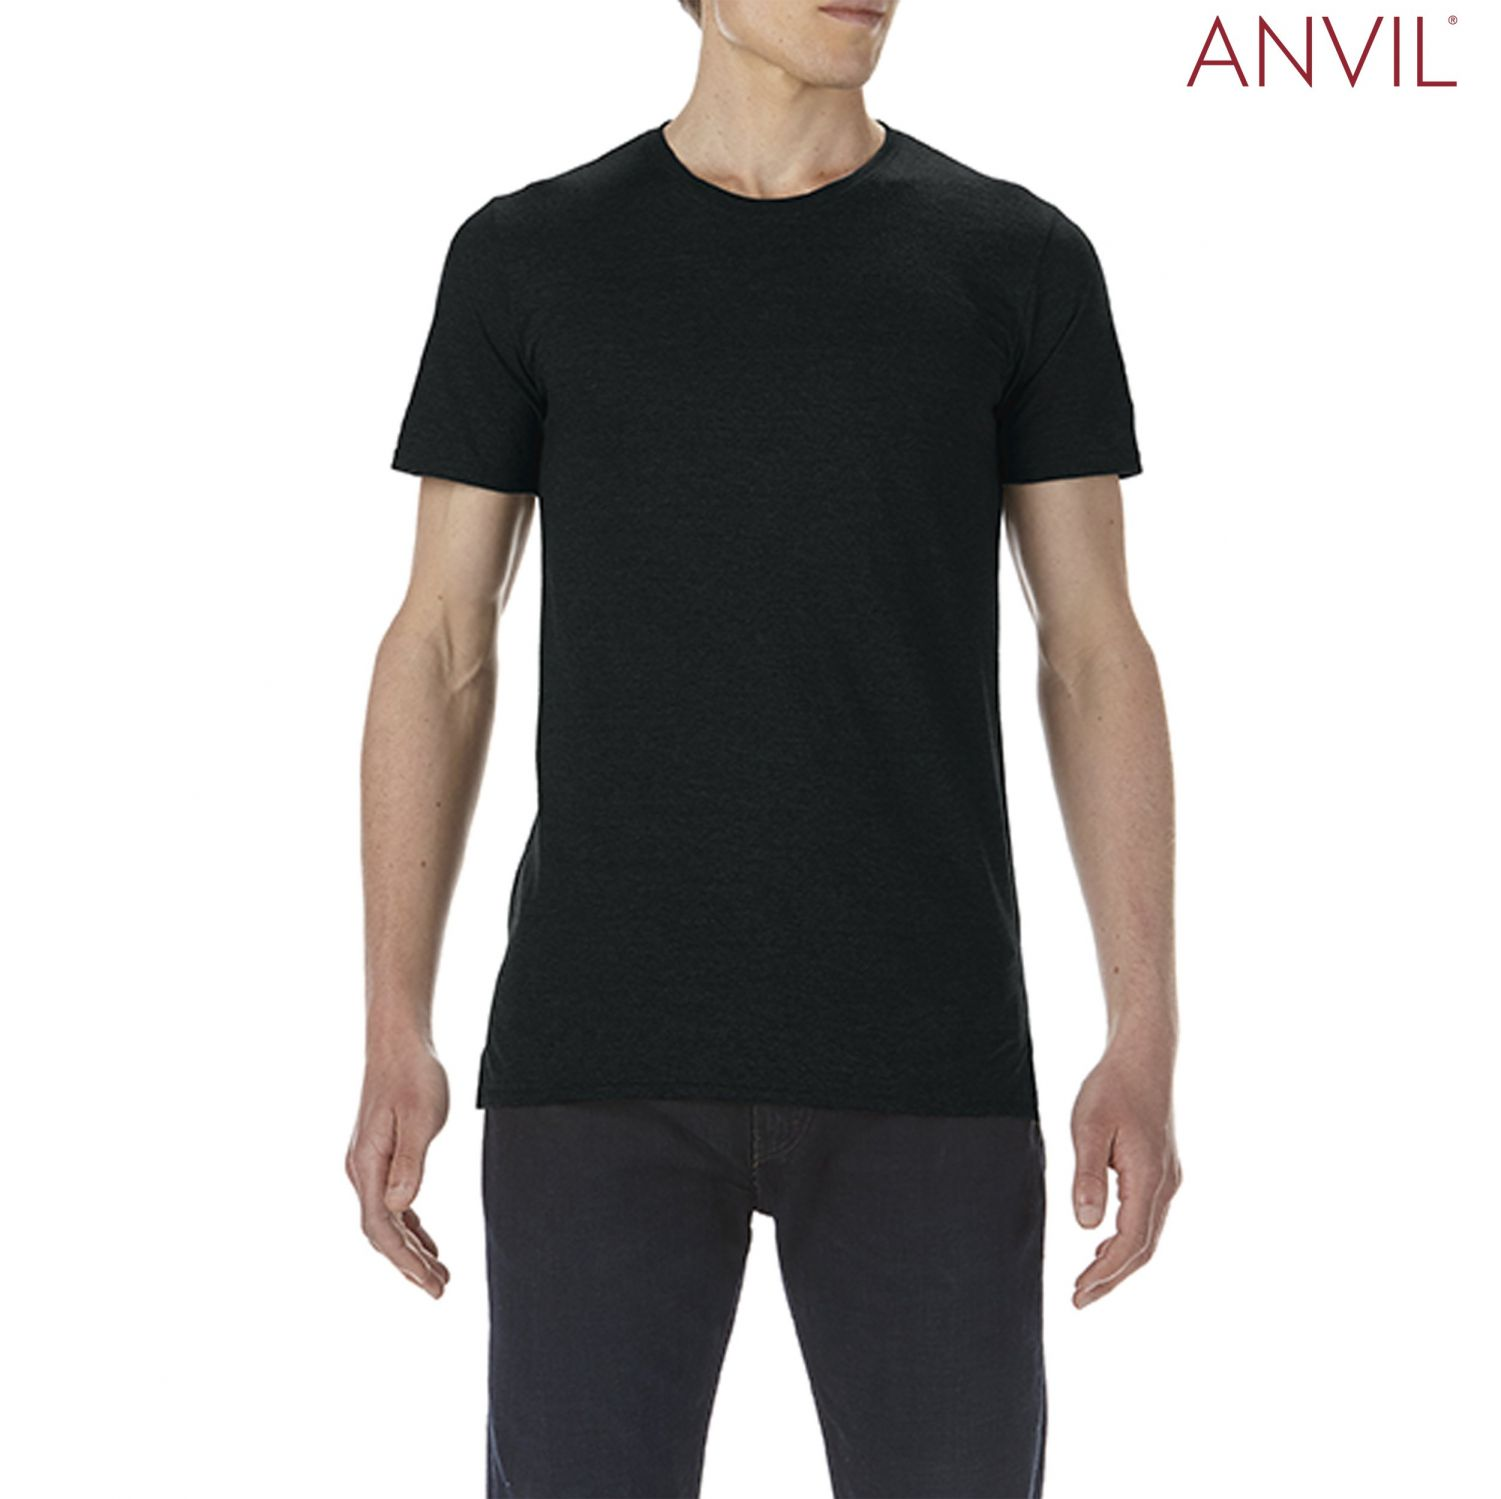 Anvil Lightweight Long & Lean T-Shirt